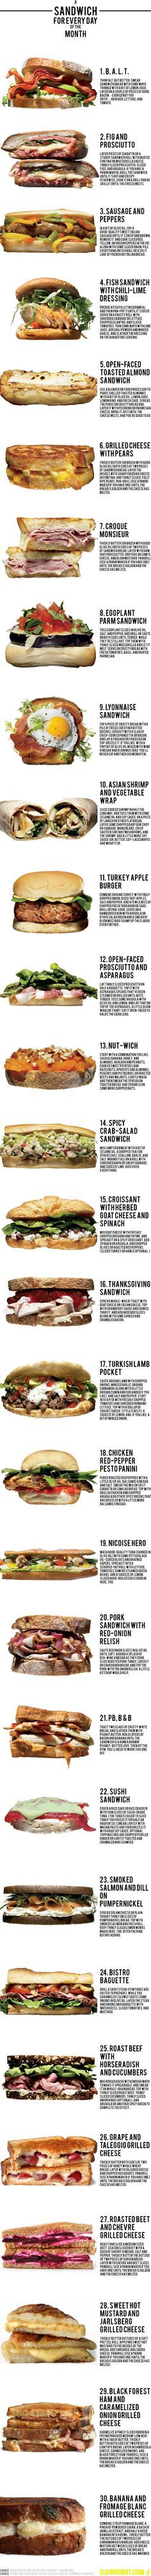 """A New Sandwich for Every Day of the Month"" by slowrobot. Sources: menshealth and chow: Each one yummy and just a little surprising!   #Infographic #Sandwiches"